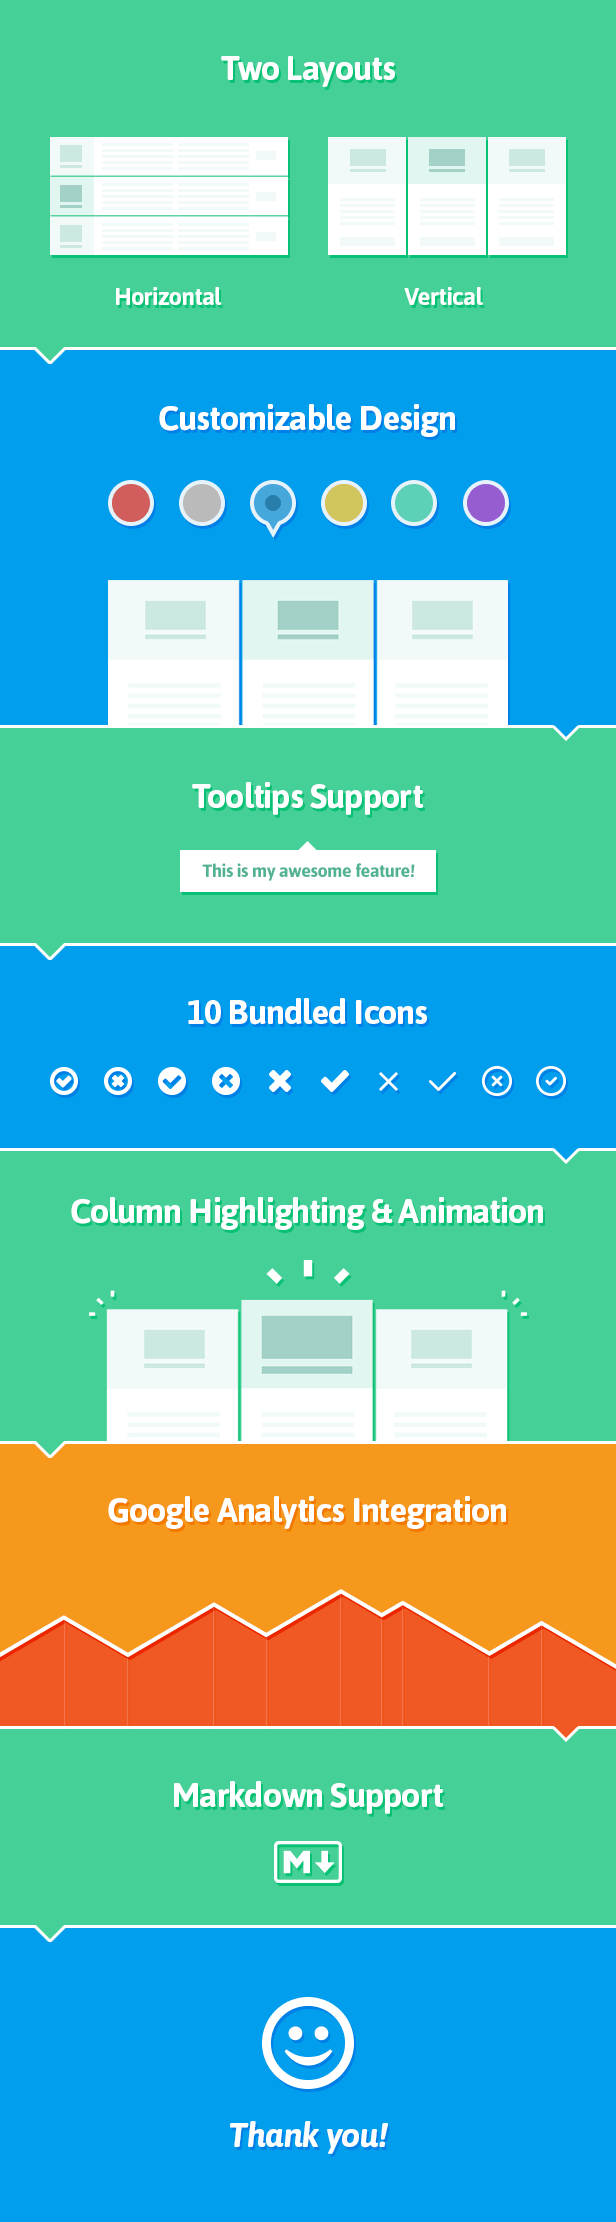 Layers Pricing Table Extension Features, Two Layouts, Customizable Design, Tooltips Support, 10 Bundled Icons, Column Highlighting and Animation, Google Analytics integration and Markdown Support.